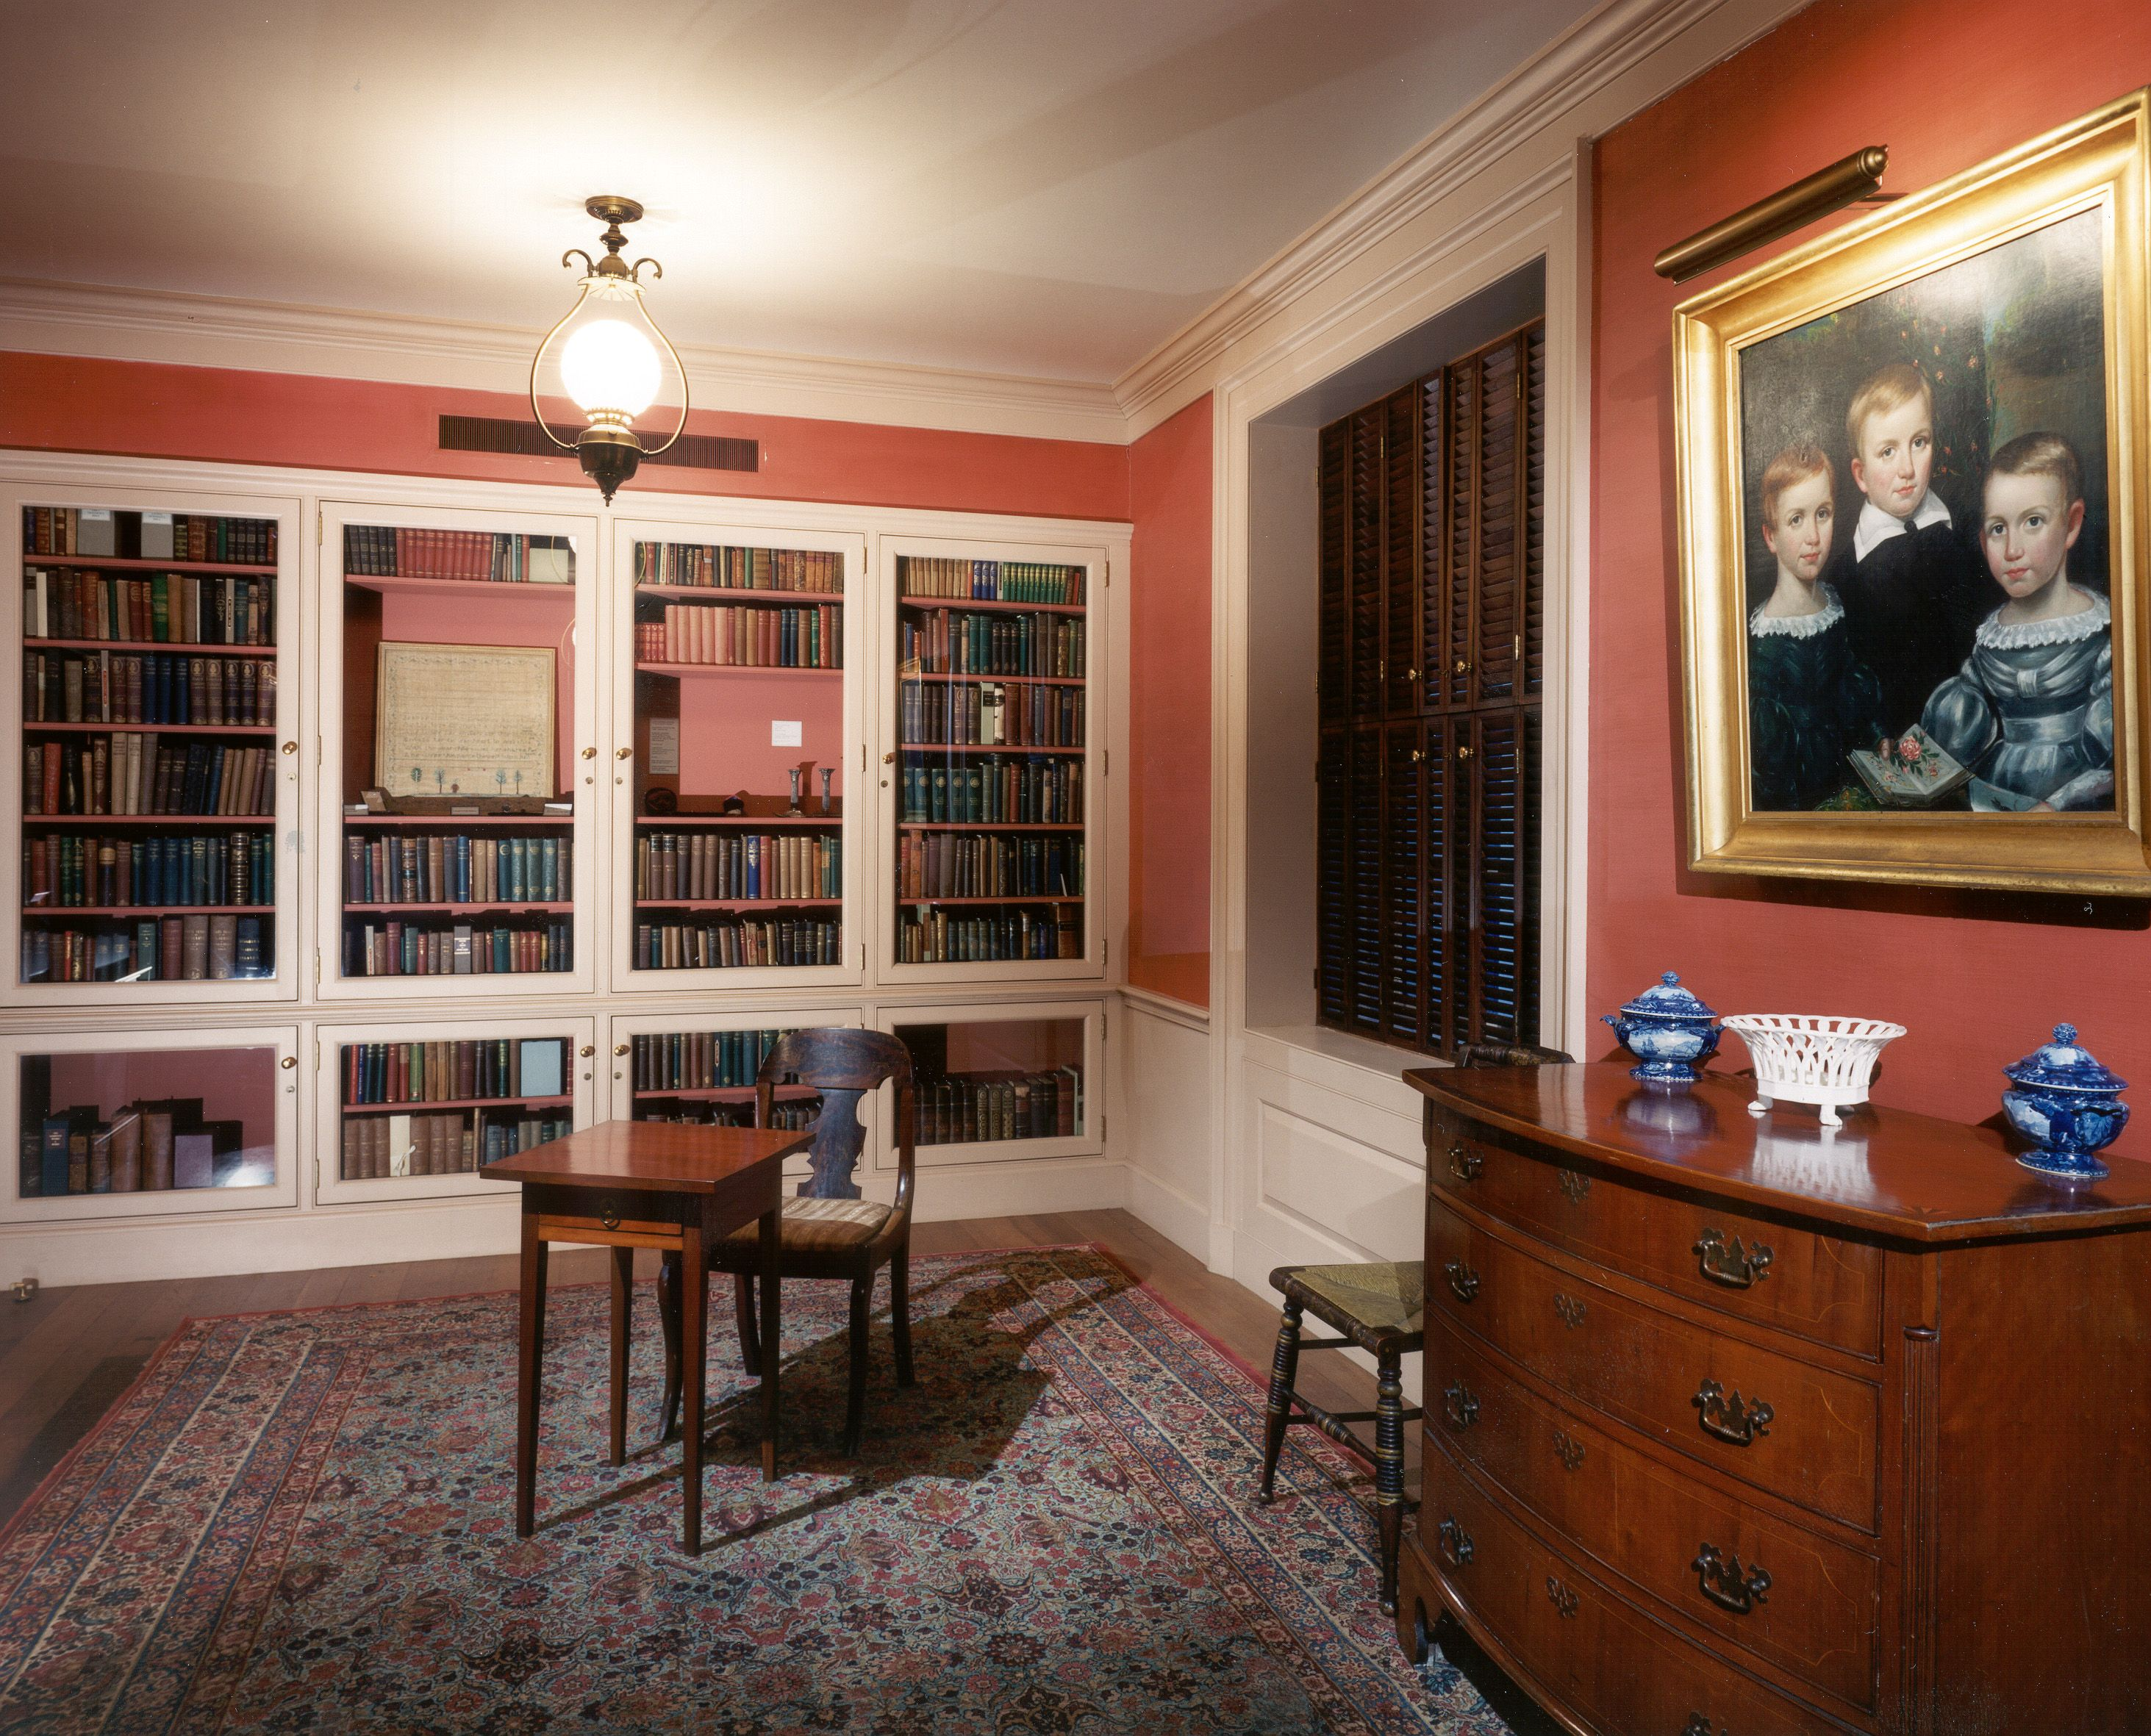 Dickinson Room at Houghton Library, Harvard University. This room includes furniture owned by the Dickinson family, including the writing